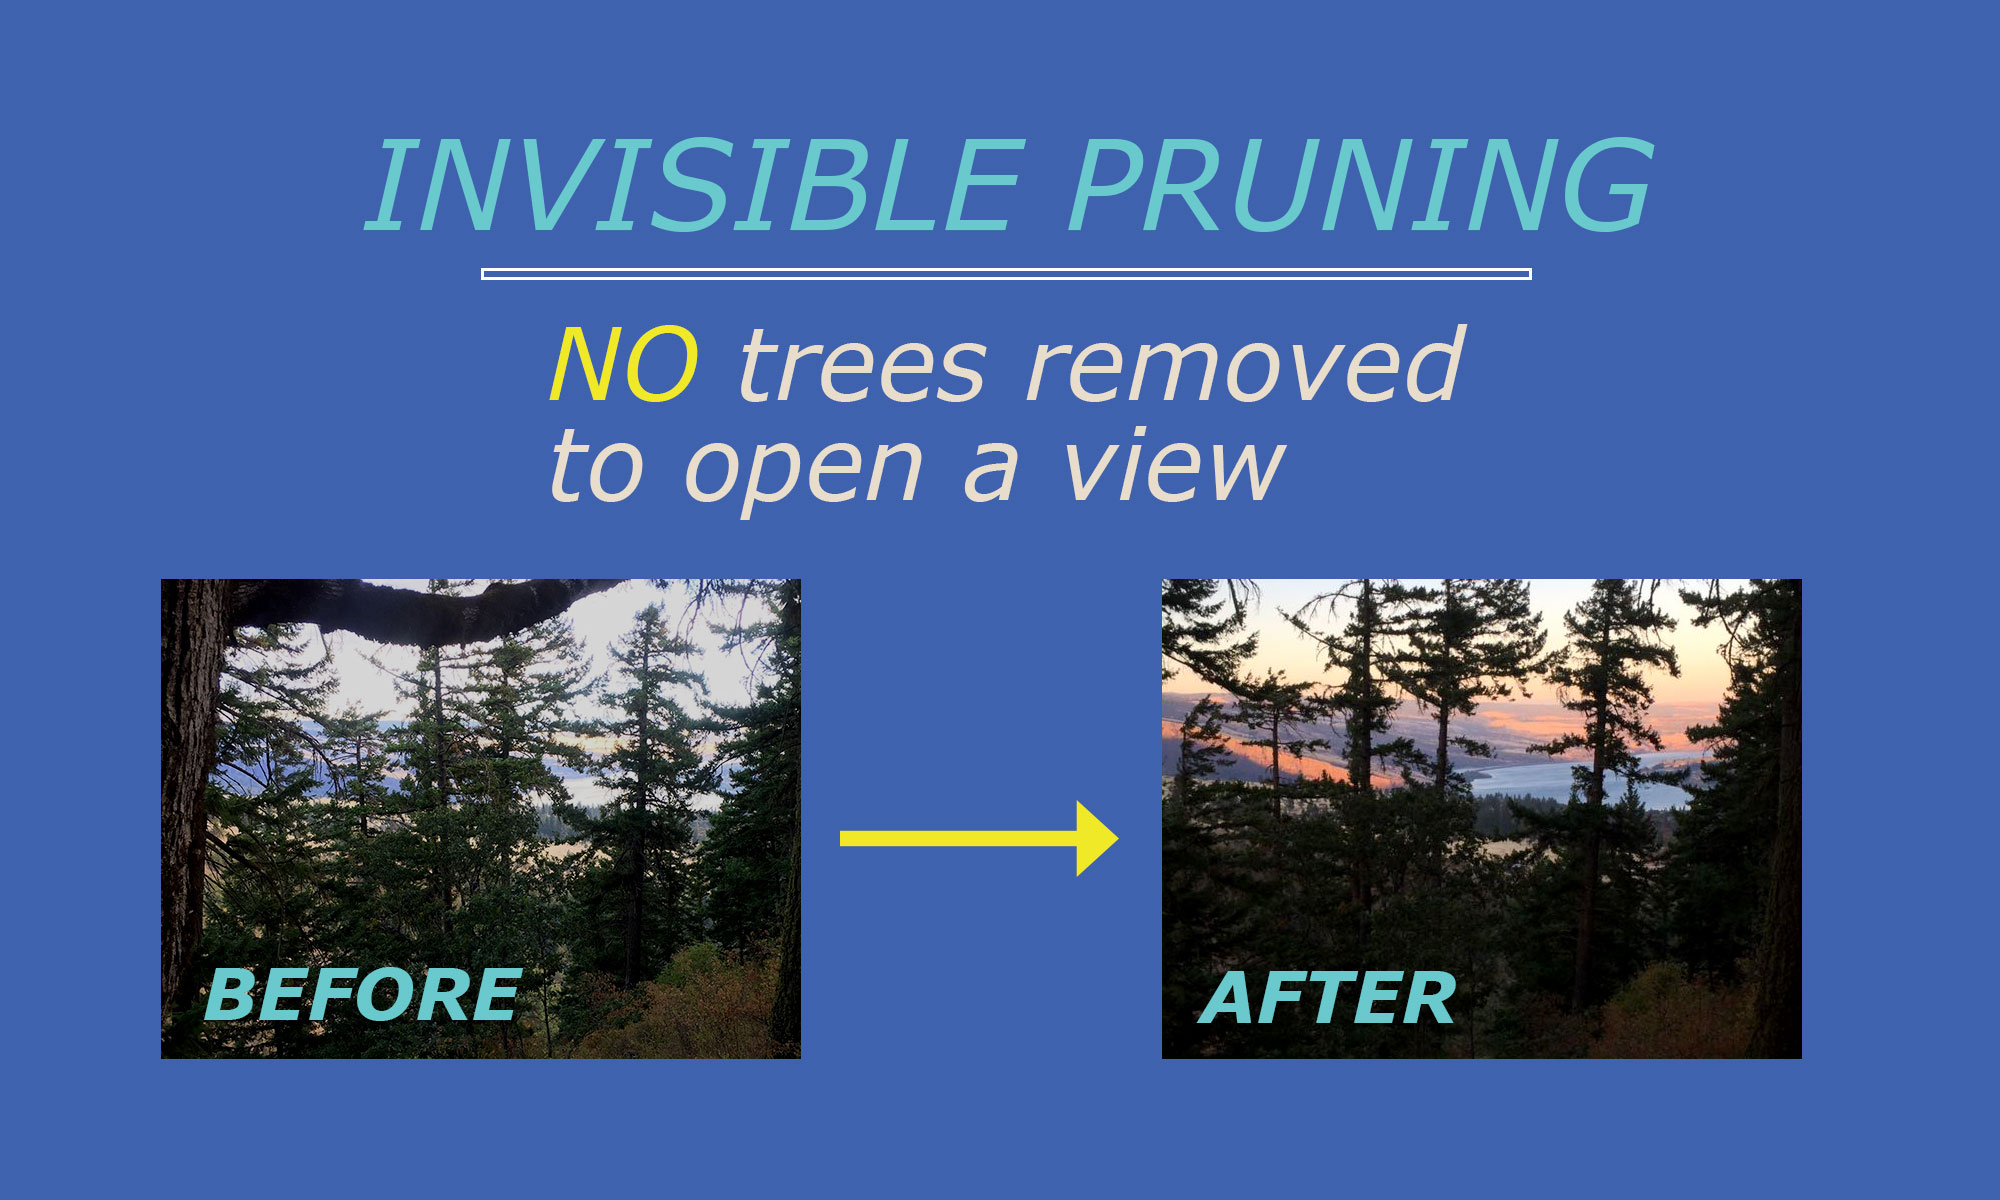 Invisible pruning before and after